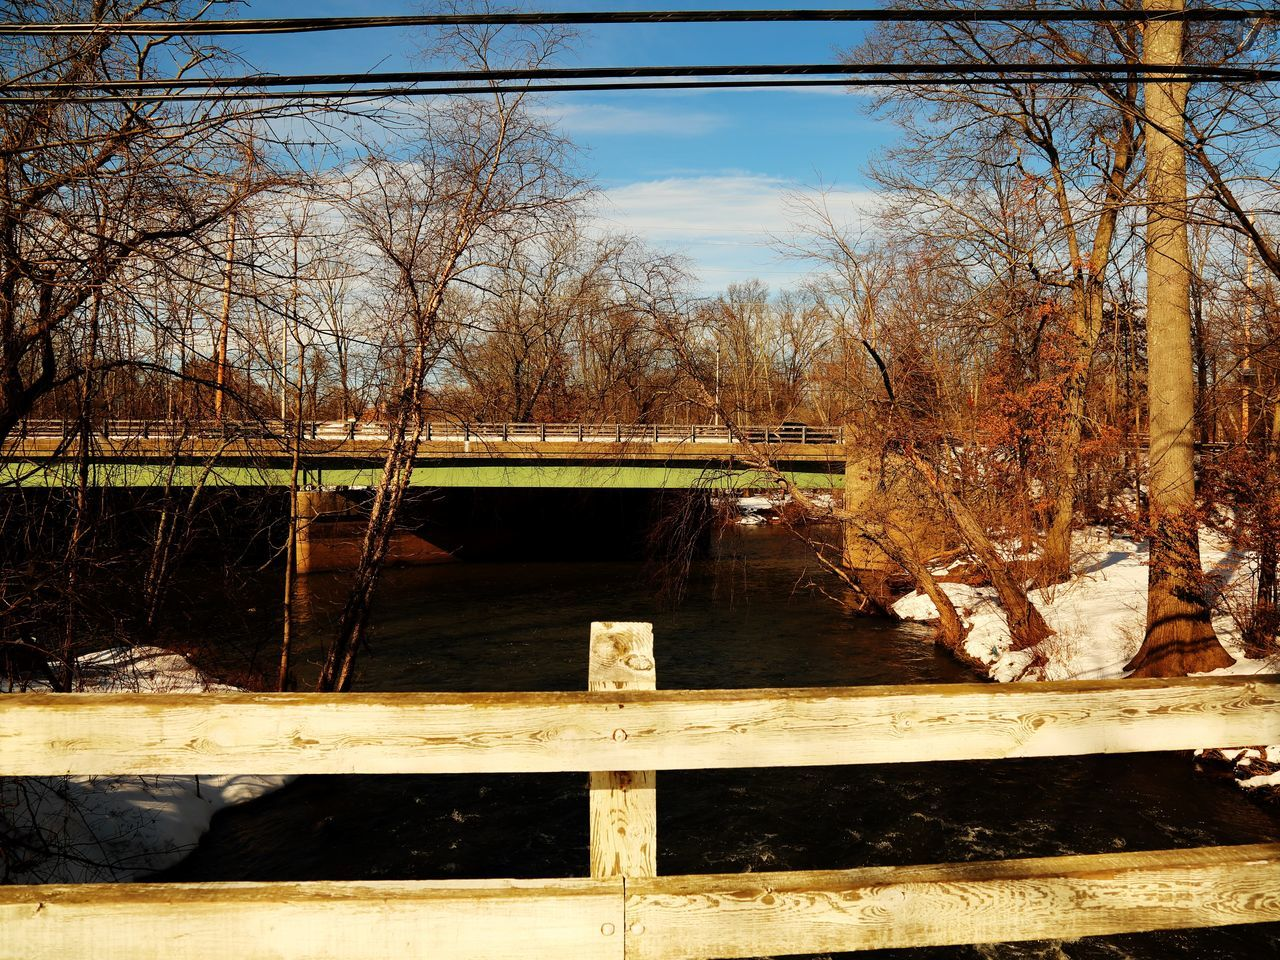 architecture, tree, built structure, bridge - man made structure, day, no people, outdoors, bare tree, nature, water, sky